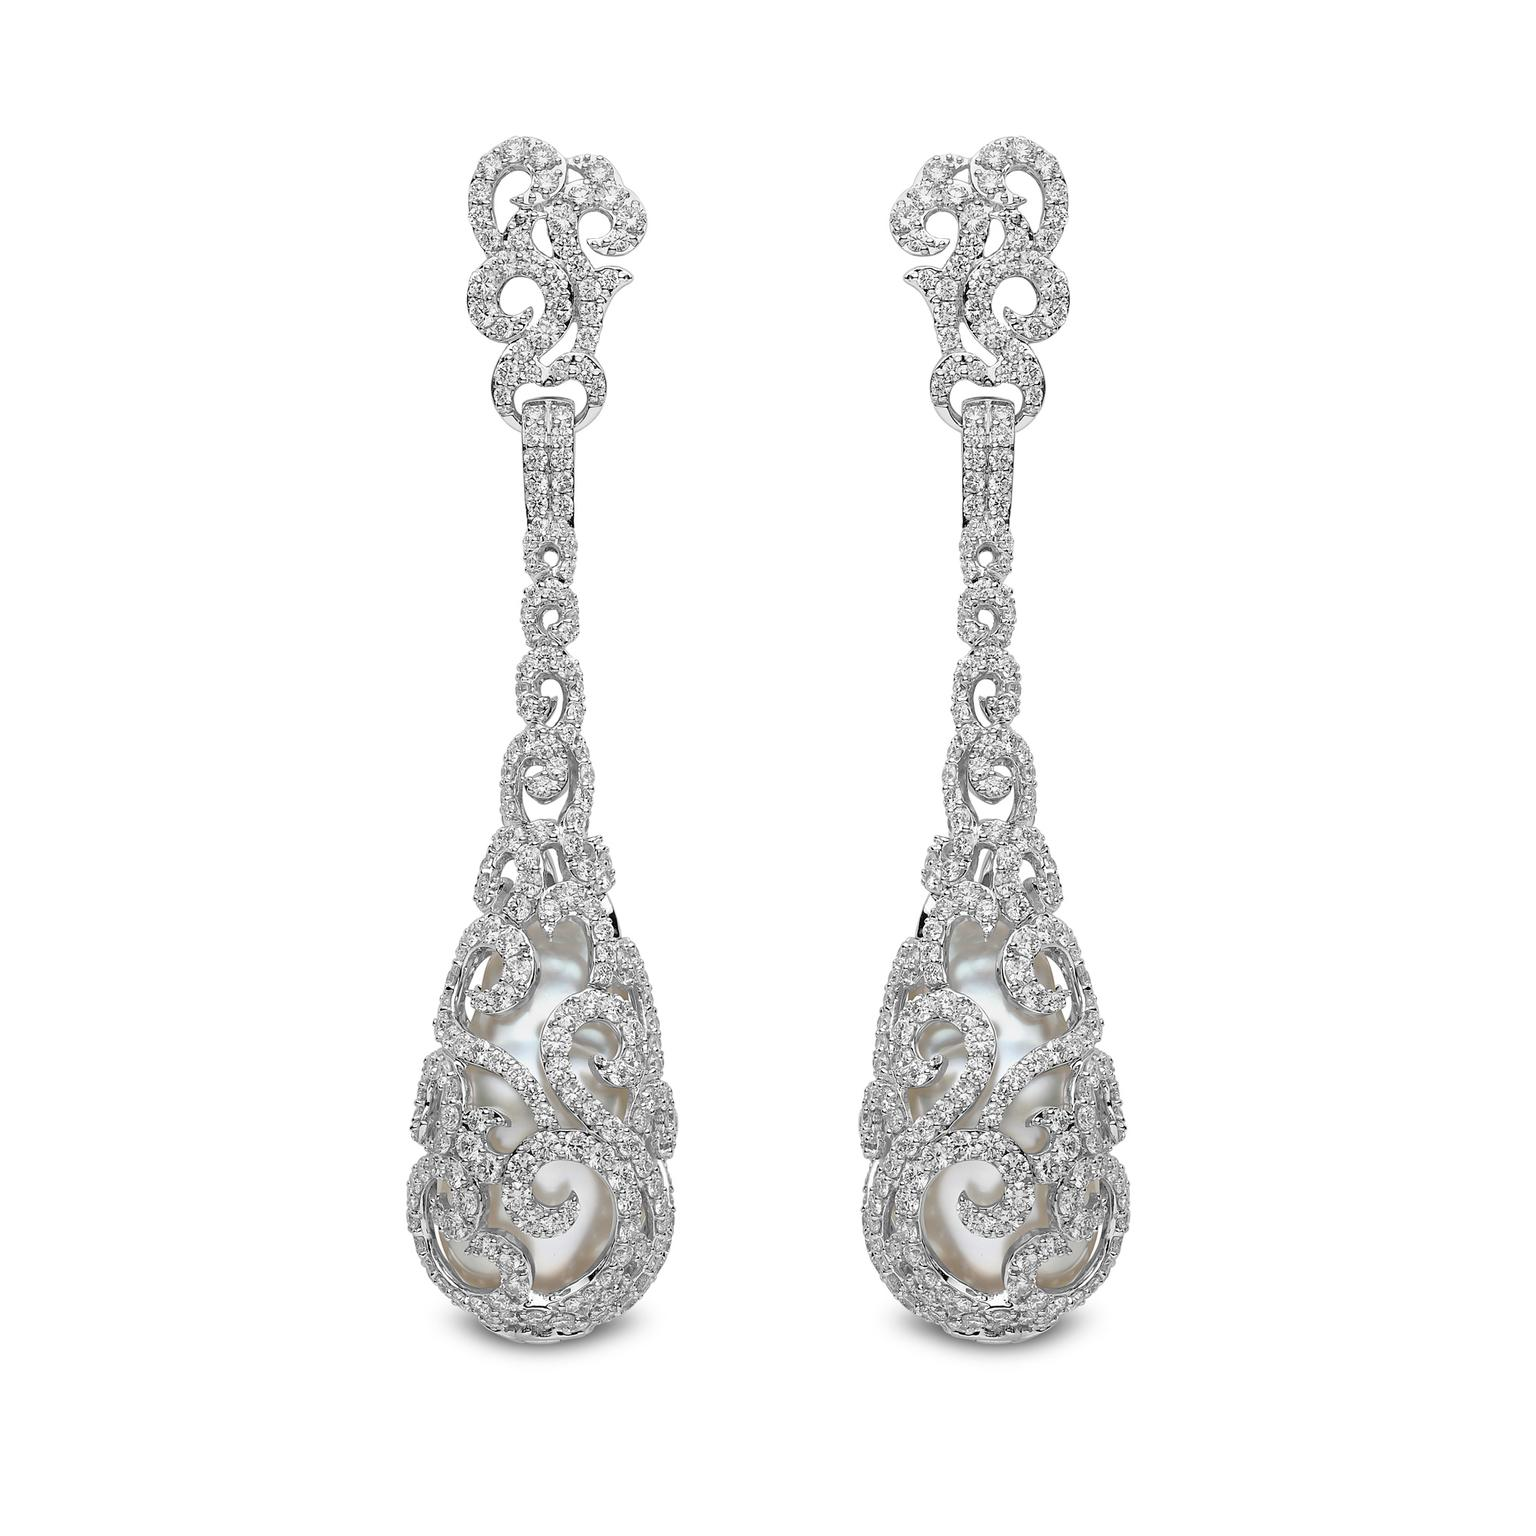 YOKO London diamond and pearl earrings